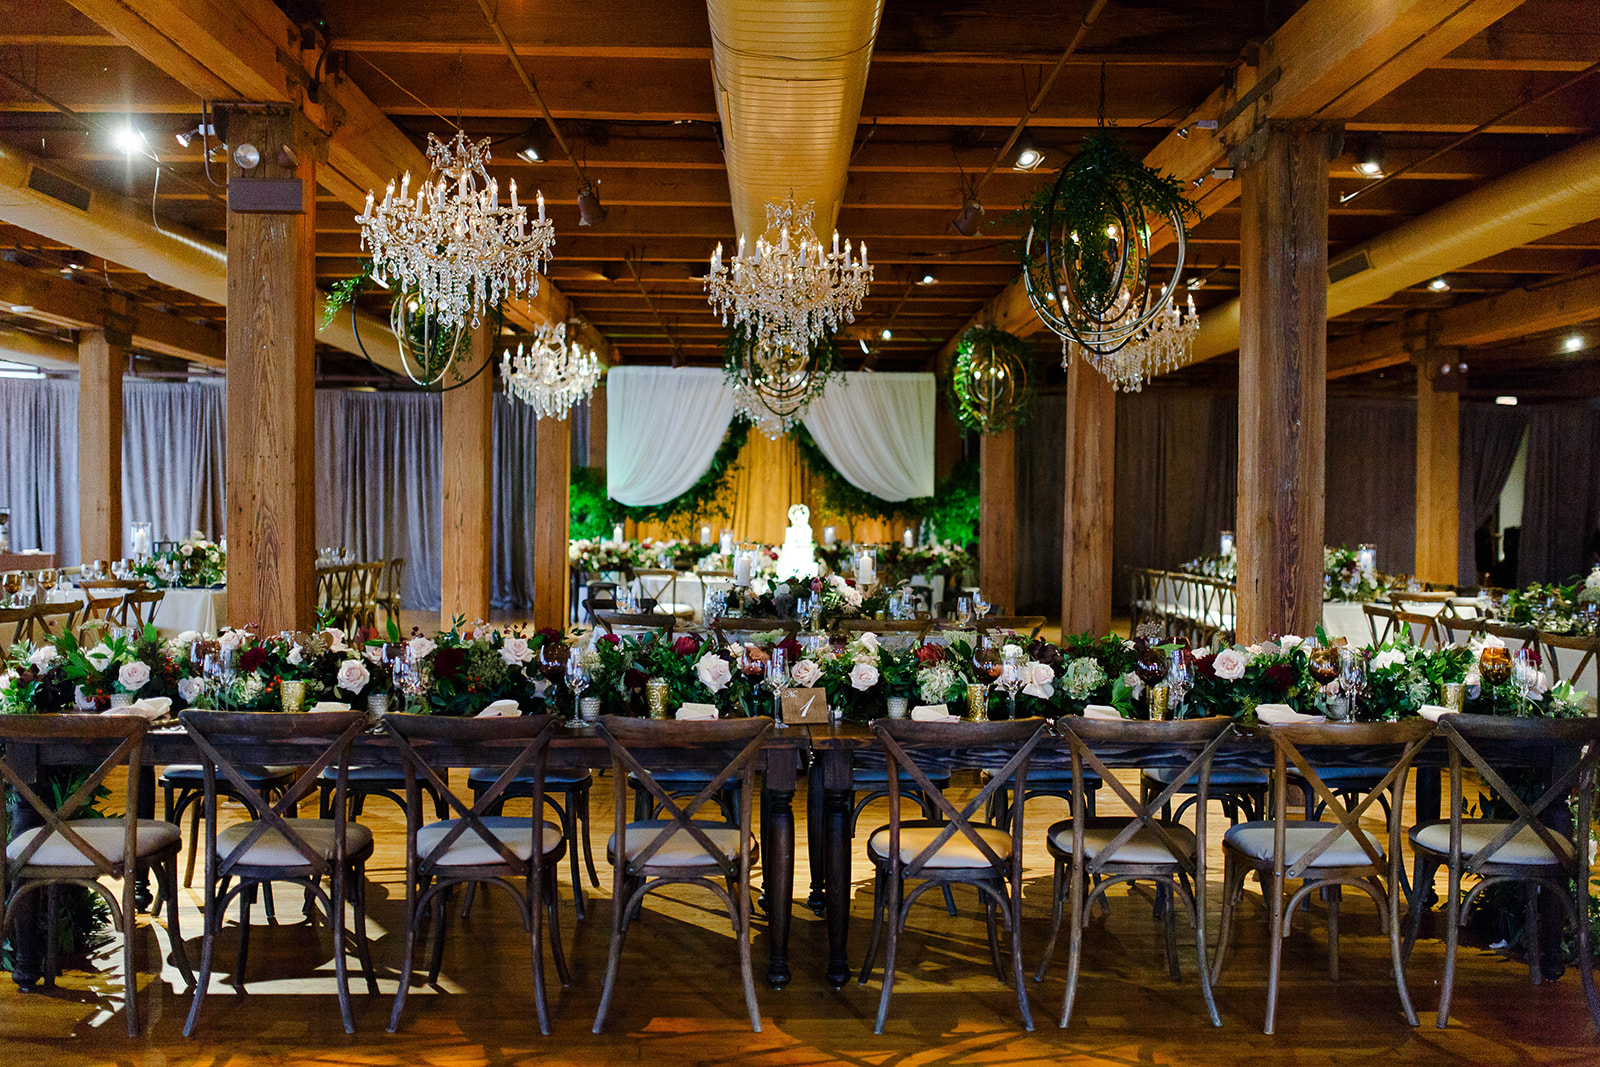 Bridgeport Art Center Sculpture Garden weddings like this one make us swoon! Renee Price and Kehoe designs did a fantastic job with the decor and did we mention how much we adore working with Claire Weller from Big City Bride? Seriously - hire Claire.